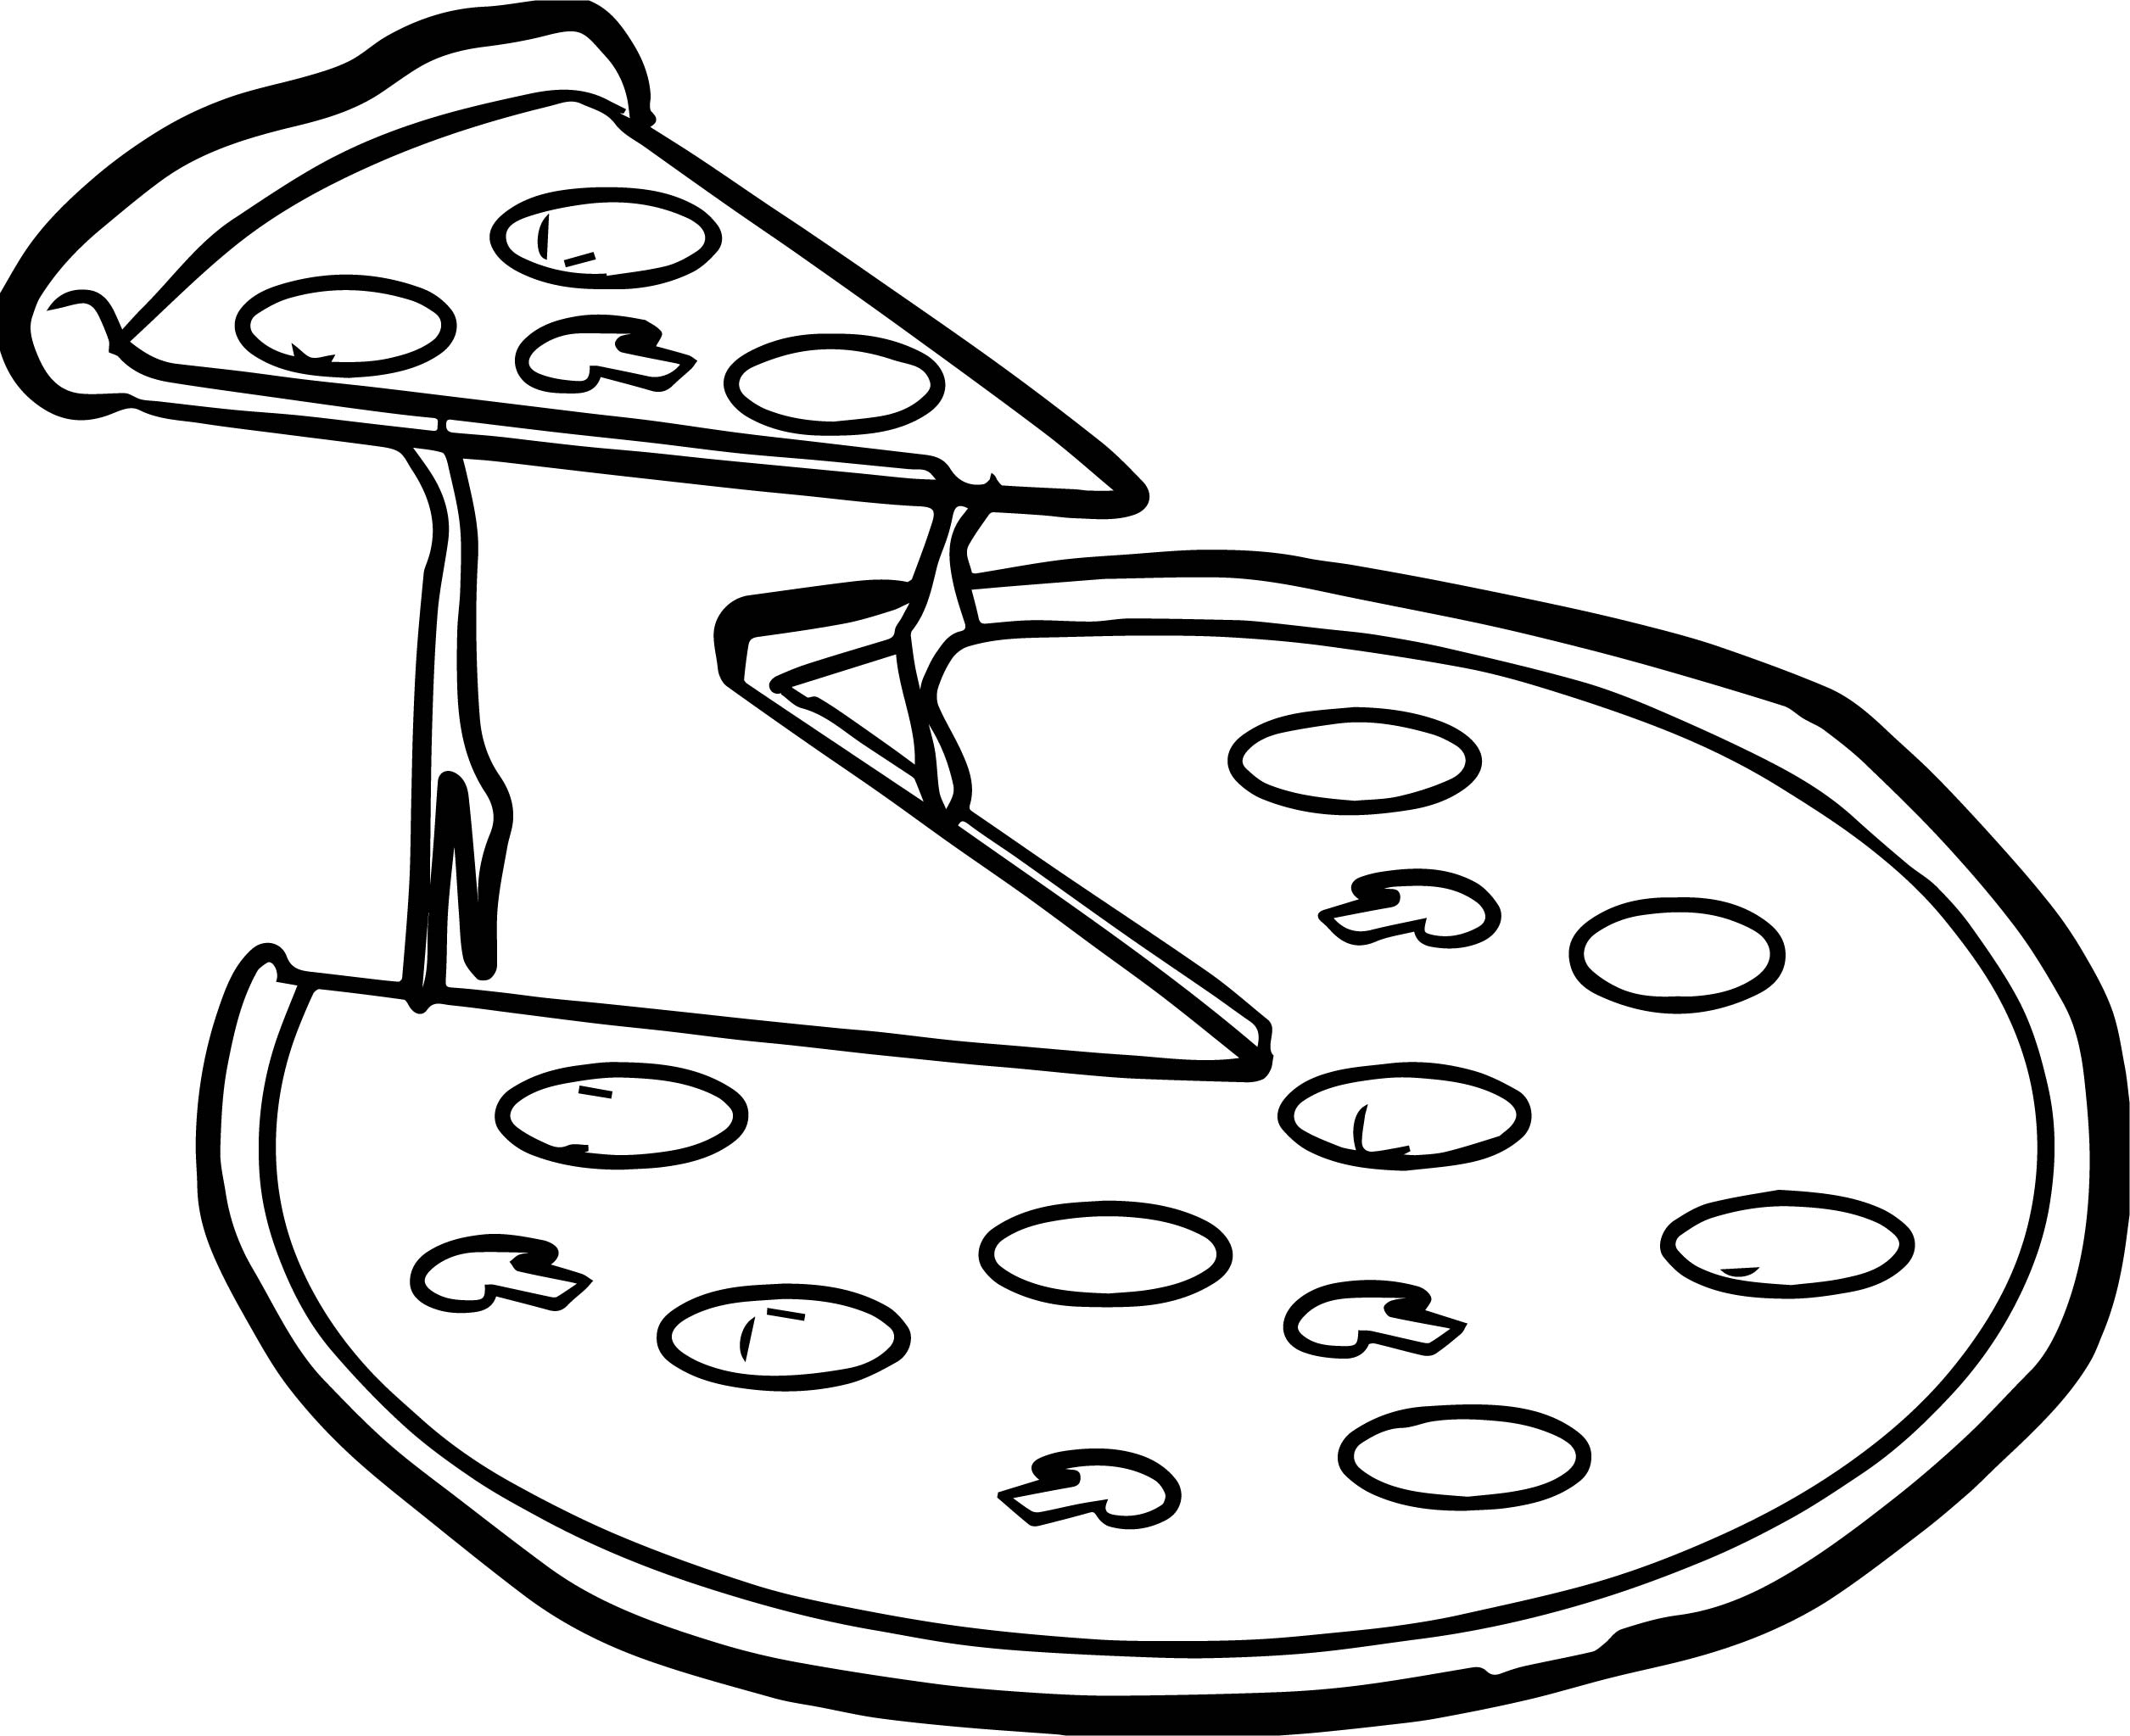 whole pizza coloring page